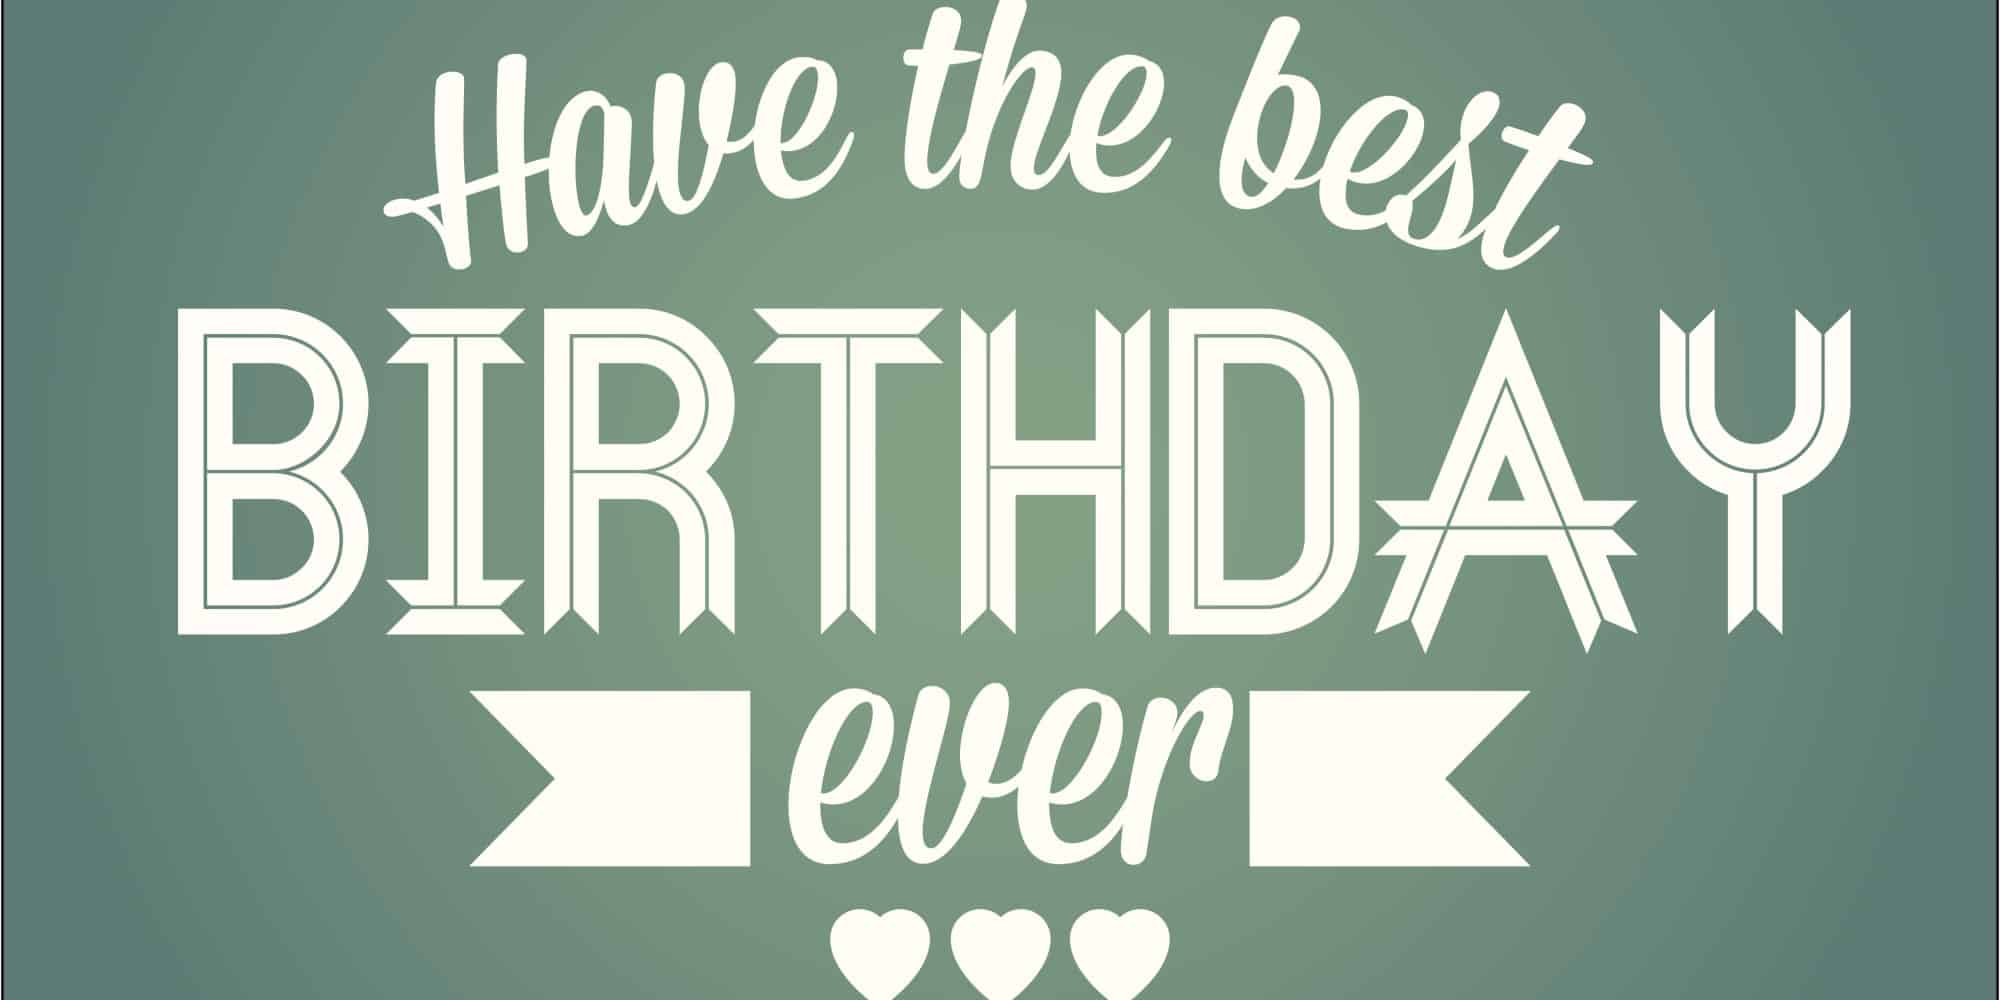 Birthday Cards For Men ~ Happy birthday images for him with quotes ilove messages